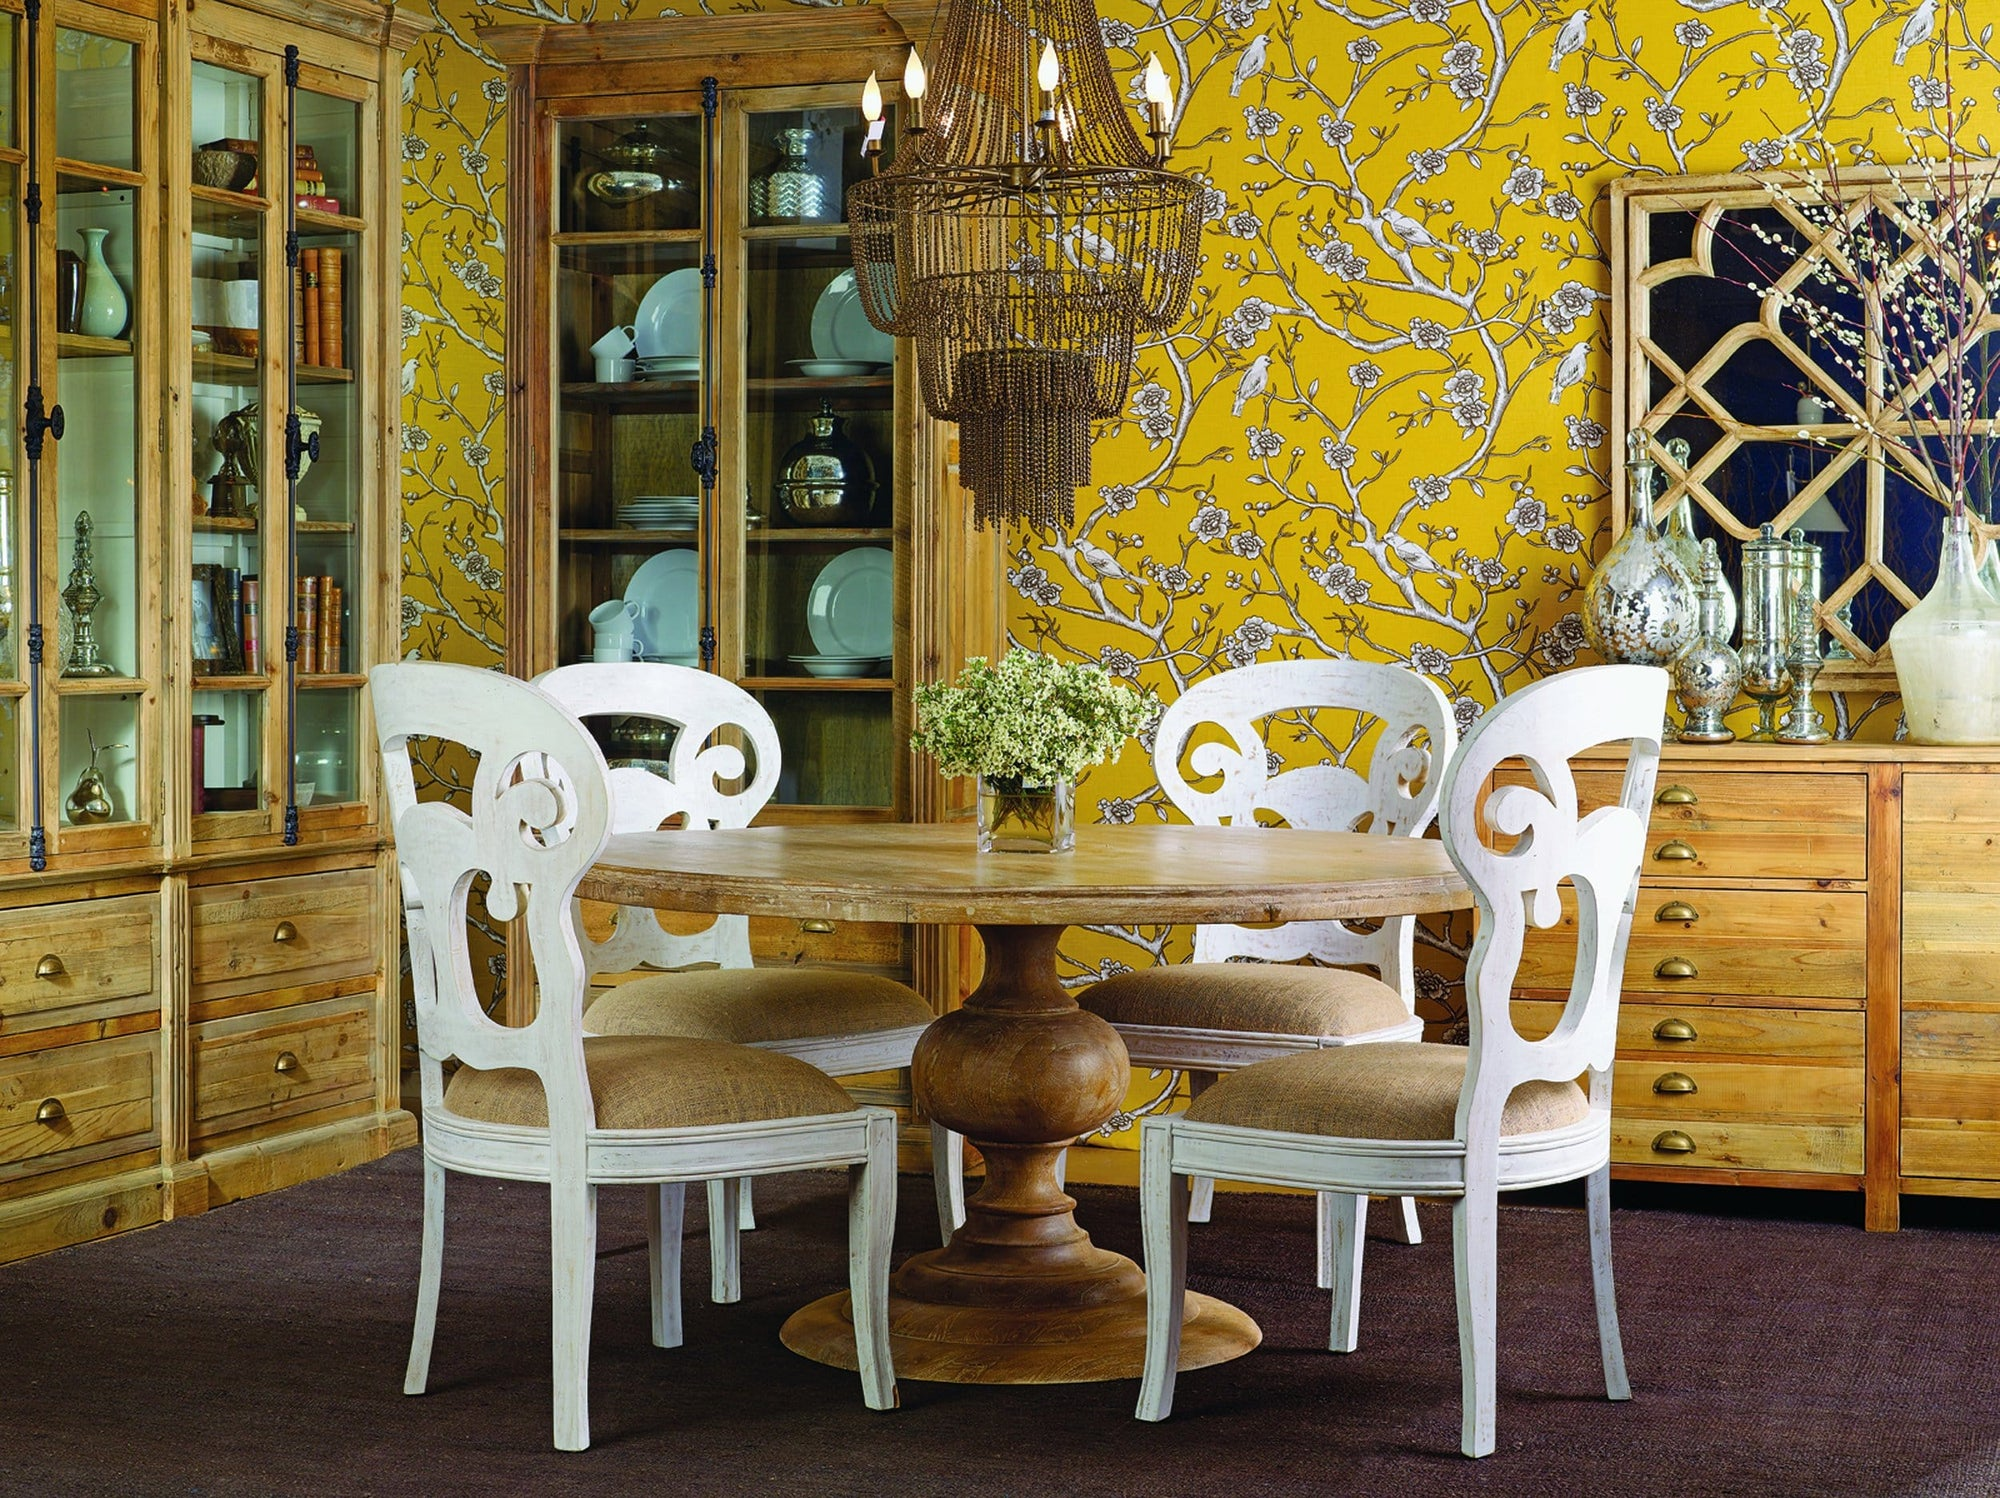 Magnolia Round Dining Table High Fashion Home